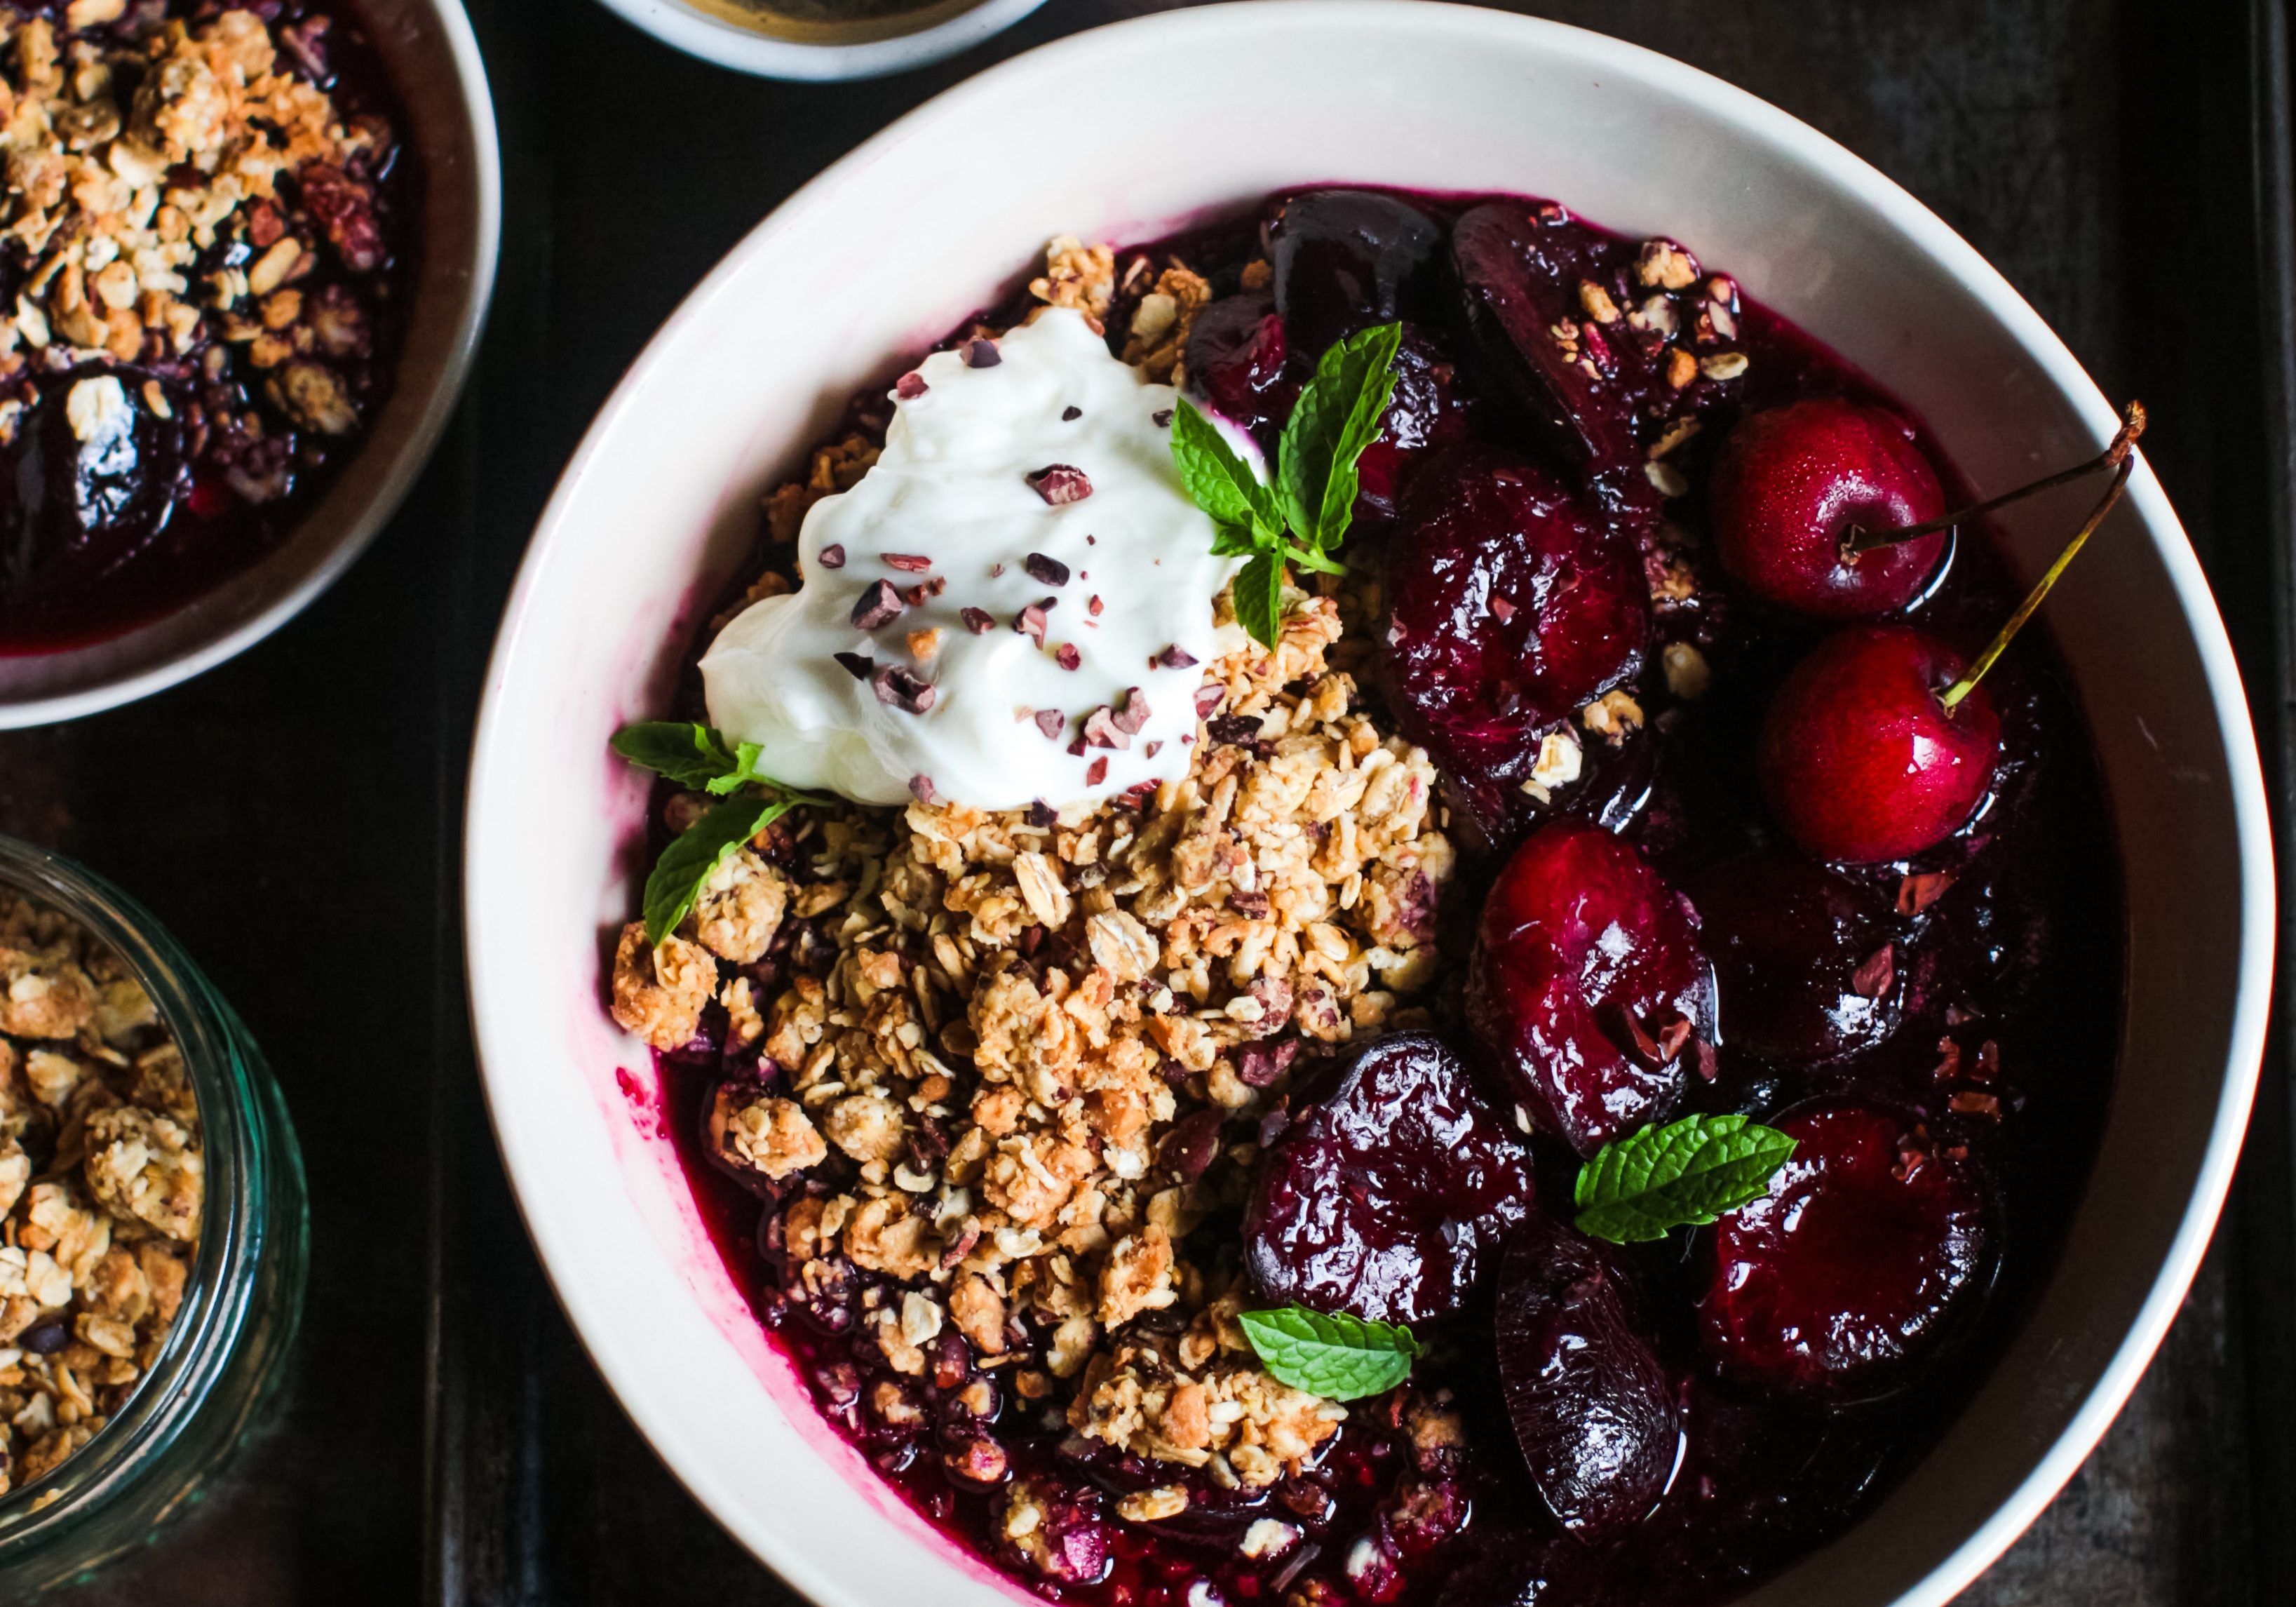 Warm cherries with granola